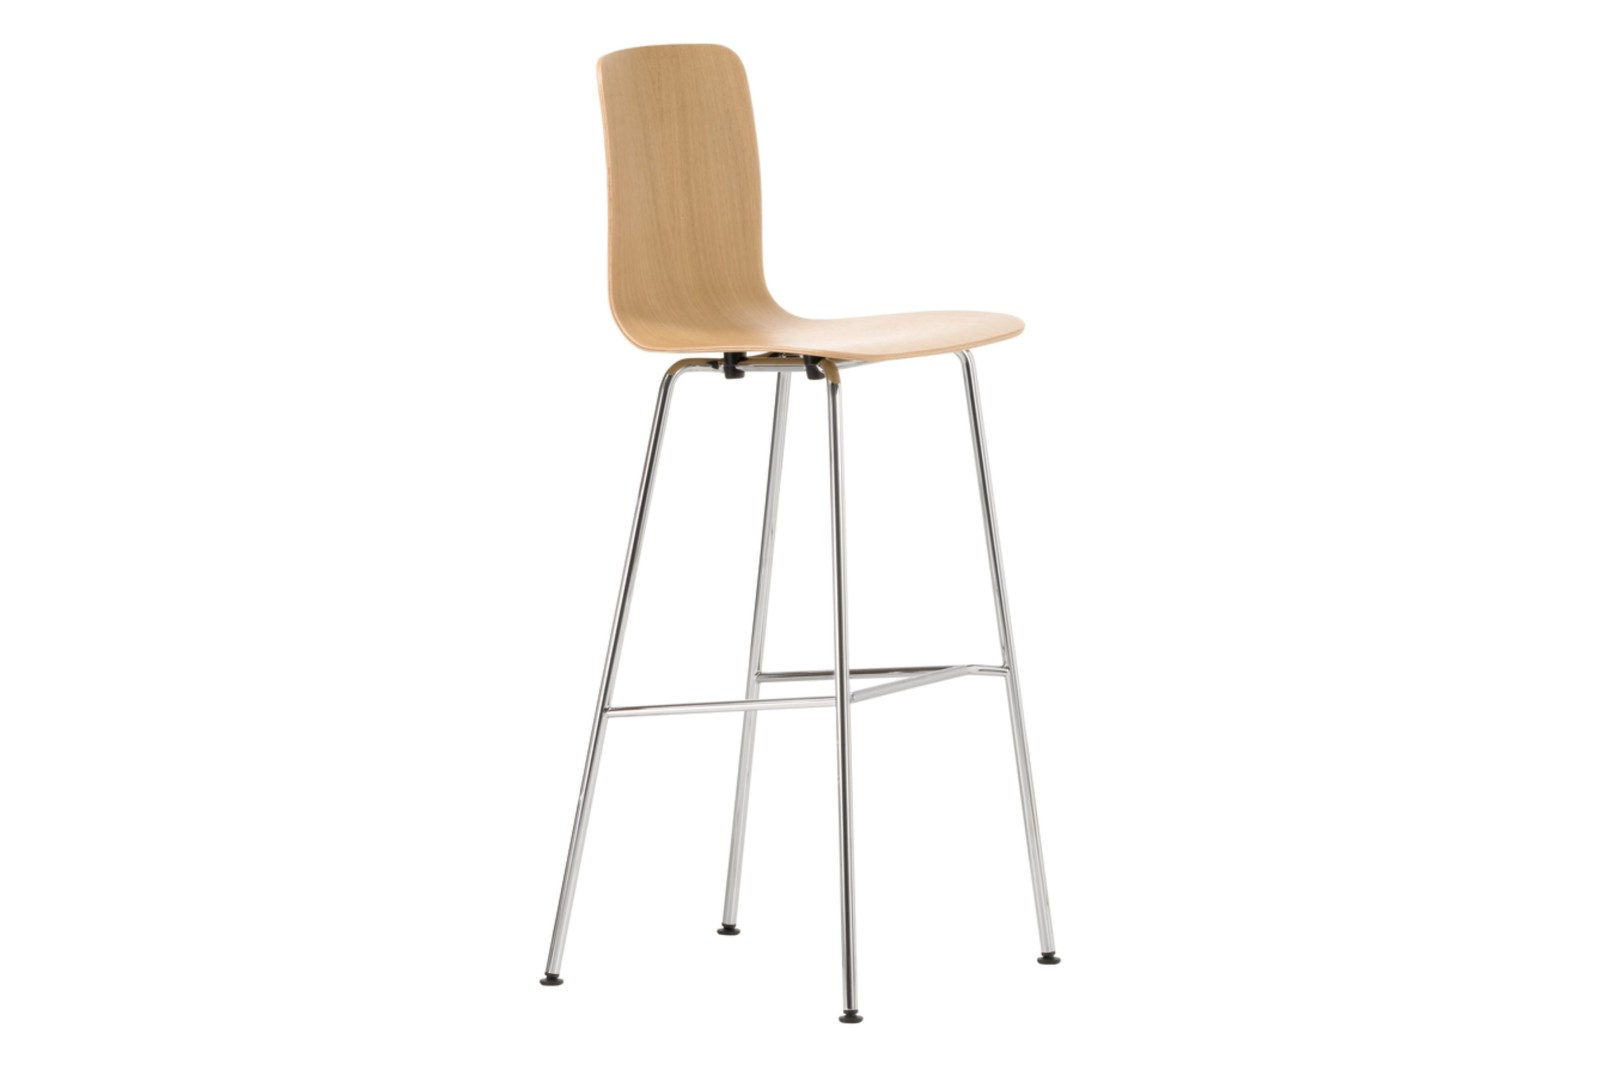 HAL High Ply Stool natural oak with protective varnish, 04 glides for carpet, 04 white